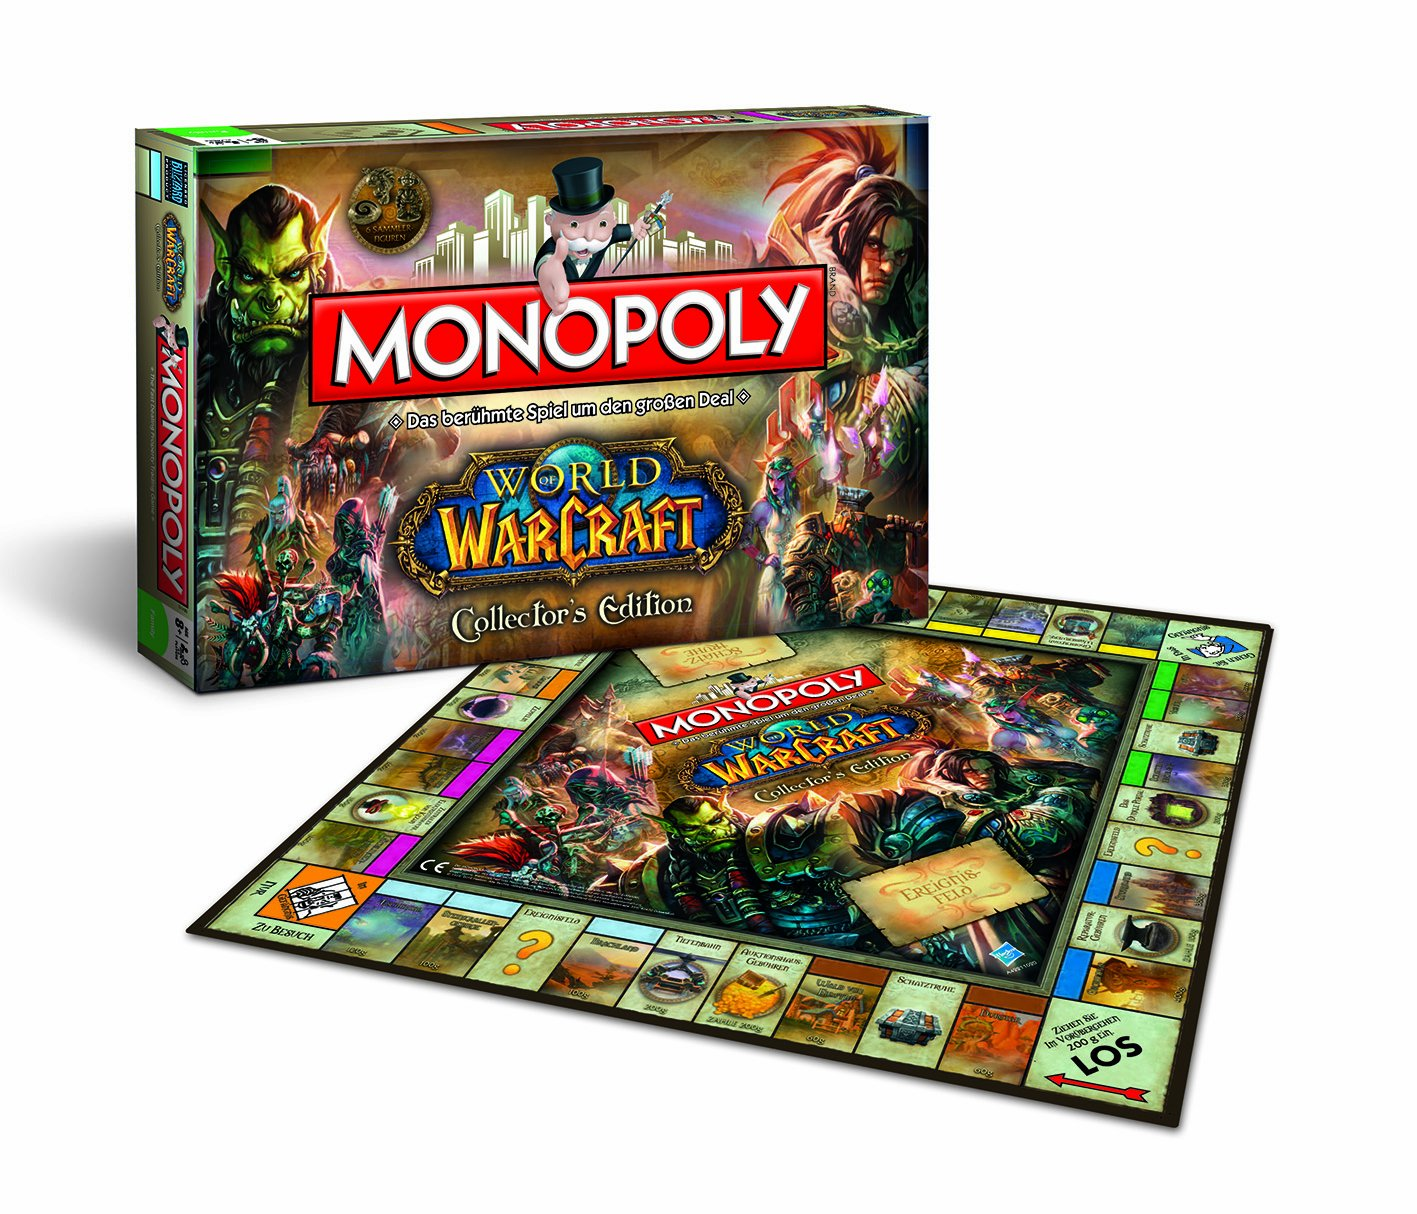 Word of Warcraft Monopoly